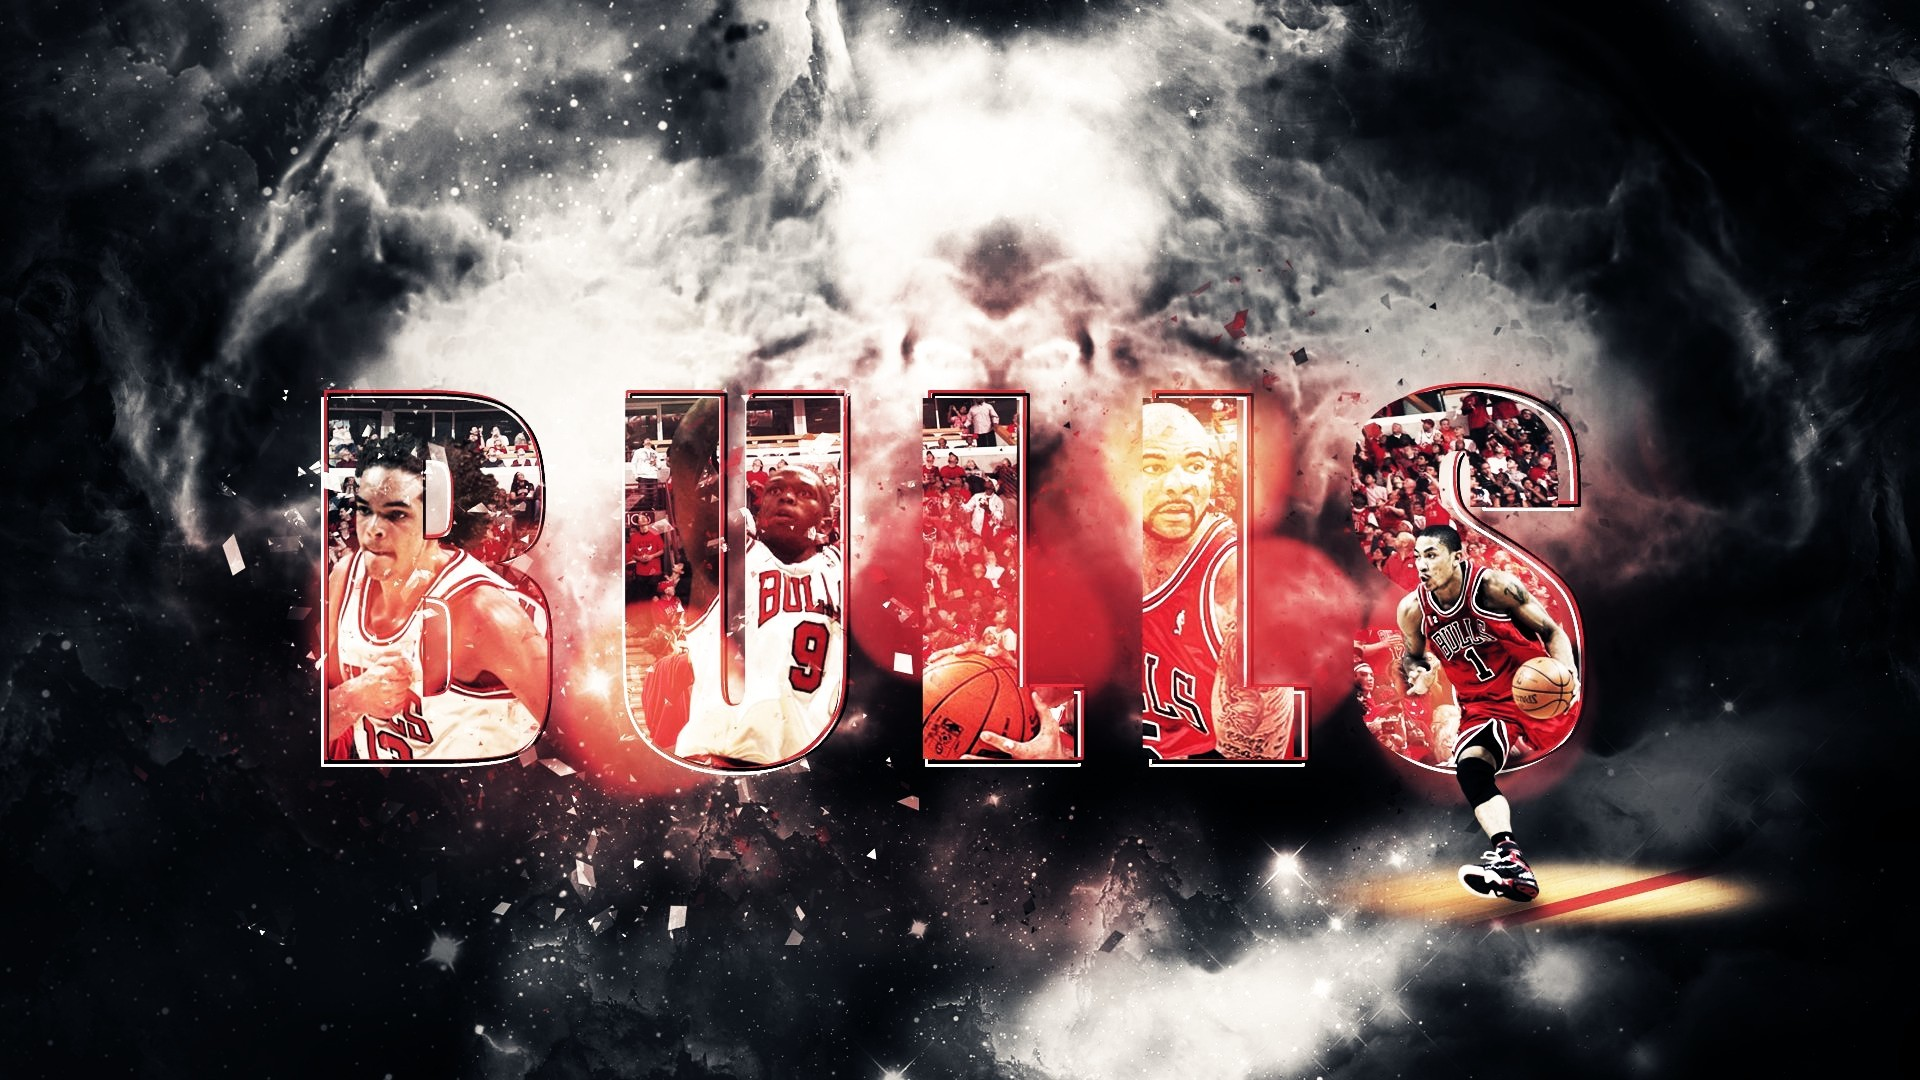 Chicago Bulls Wallpapers HD Wallpaper × Chicago Bulls   HD Wallpapers    Pinterest   Bulls wallpaper, Chicago bulls and Chicago